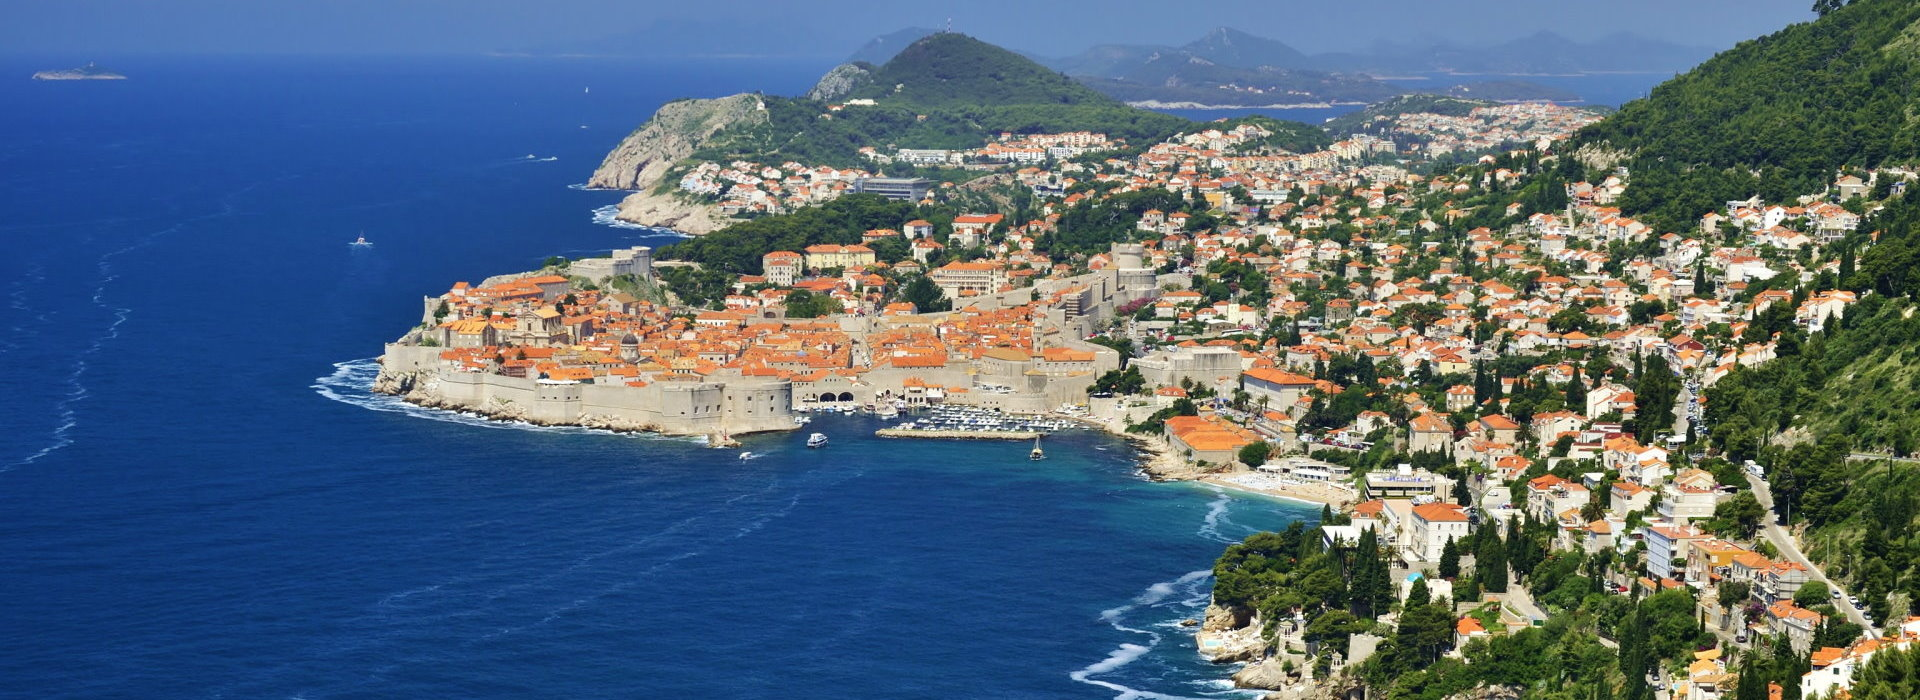 Your holiday dream Dubrovnik